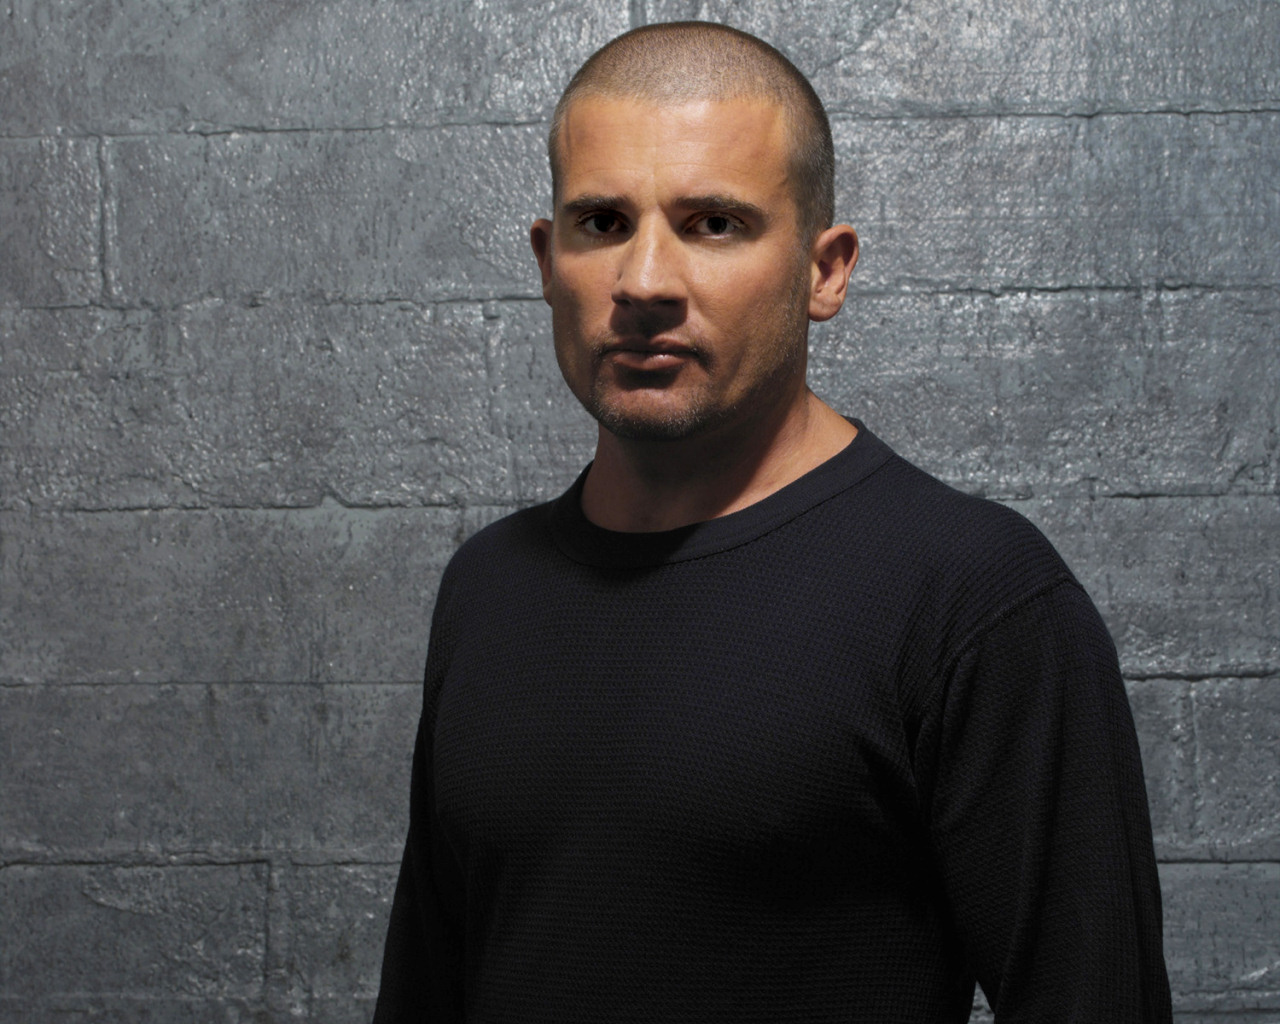 Dominic_Purcell_06_1280x1024.jpg